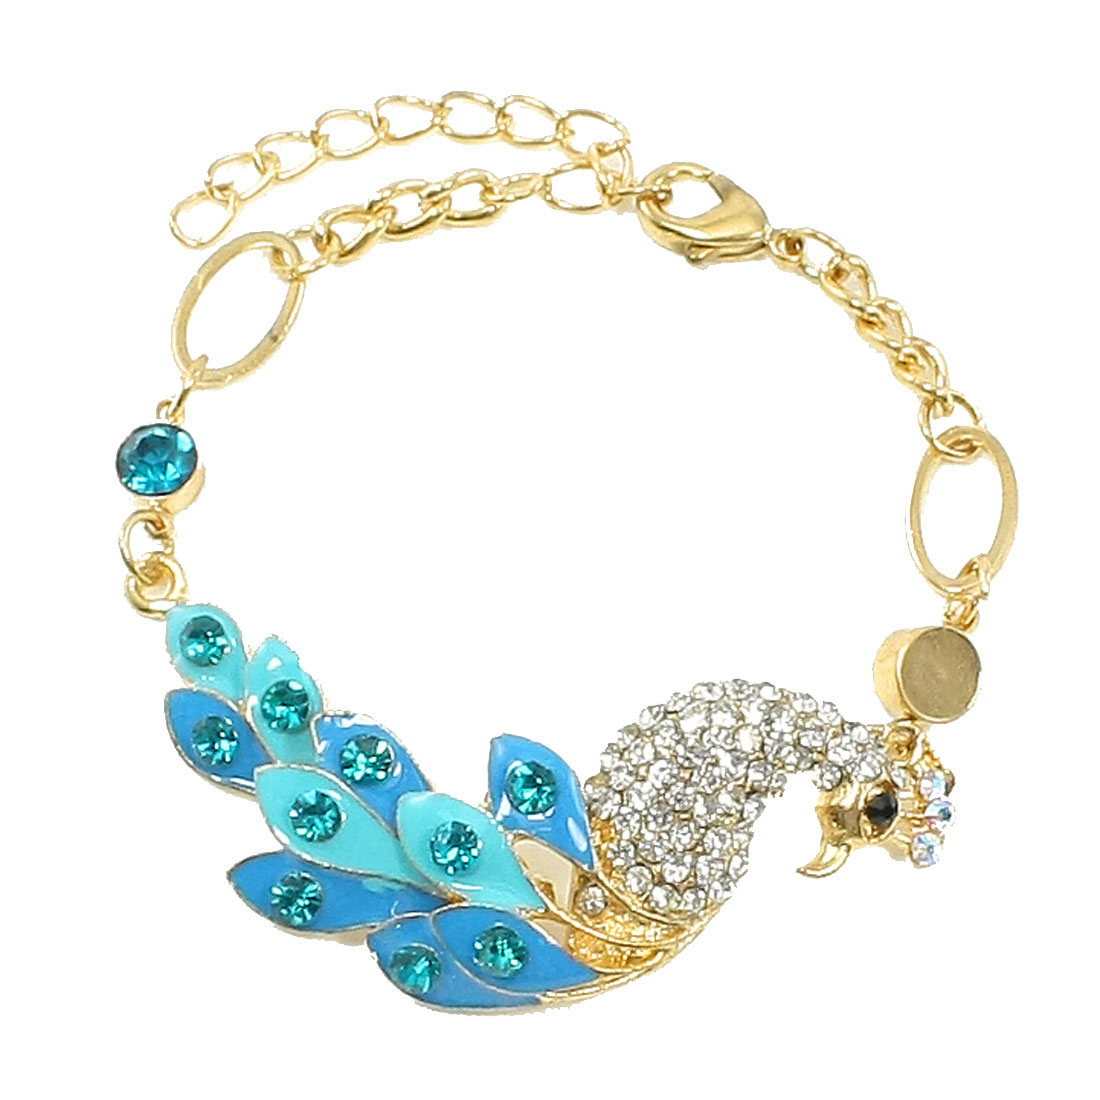 Gold Tone Turquoise Rhinestones Inlaid Peacock Wrist Bracelet Chain for Girl